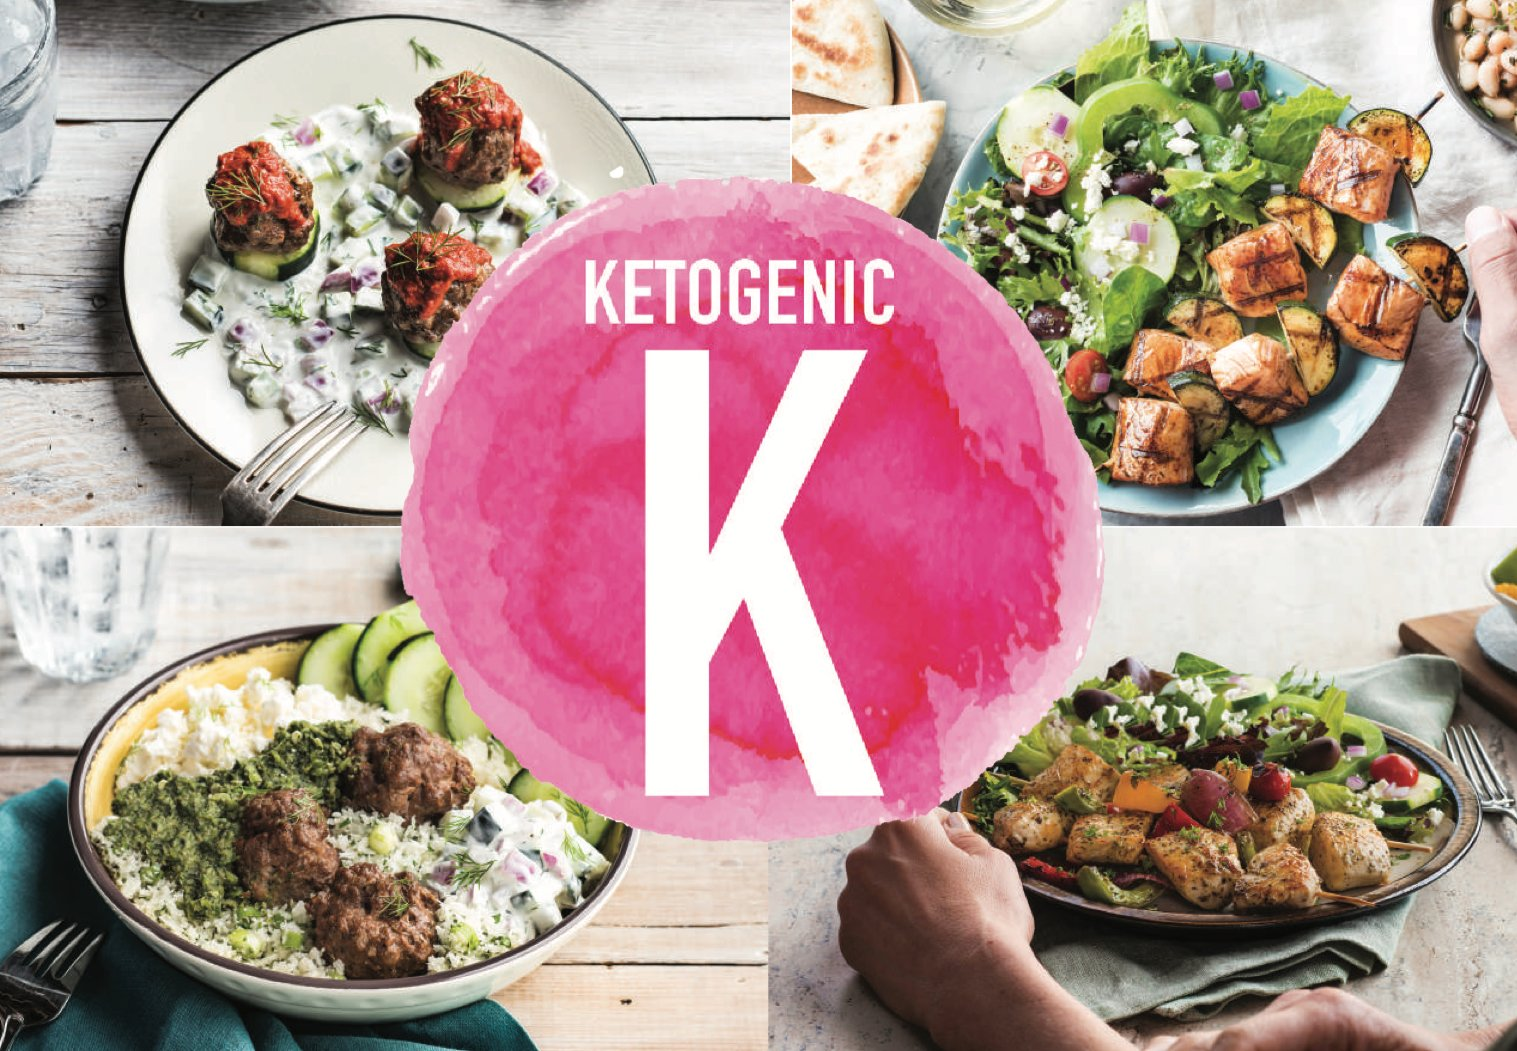 Zoes Kitchen On Twitter Hey Keto Community Our Keto Approved Menu Is Prepared At All Of Our Locations And Will Help You Keep On Track Without Sacrificing Flavor Our Your Pocketbook Learn